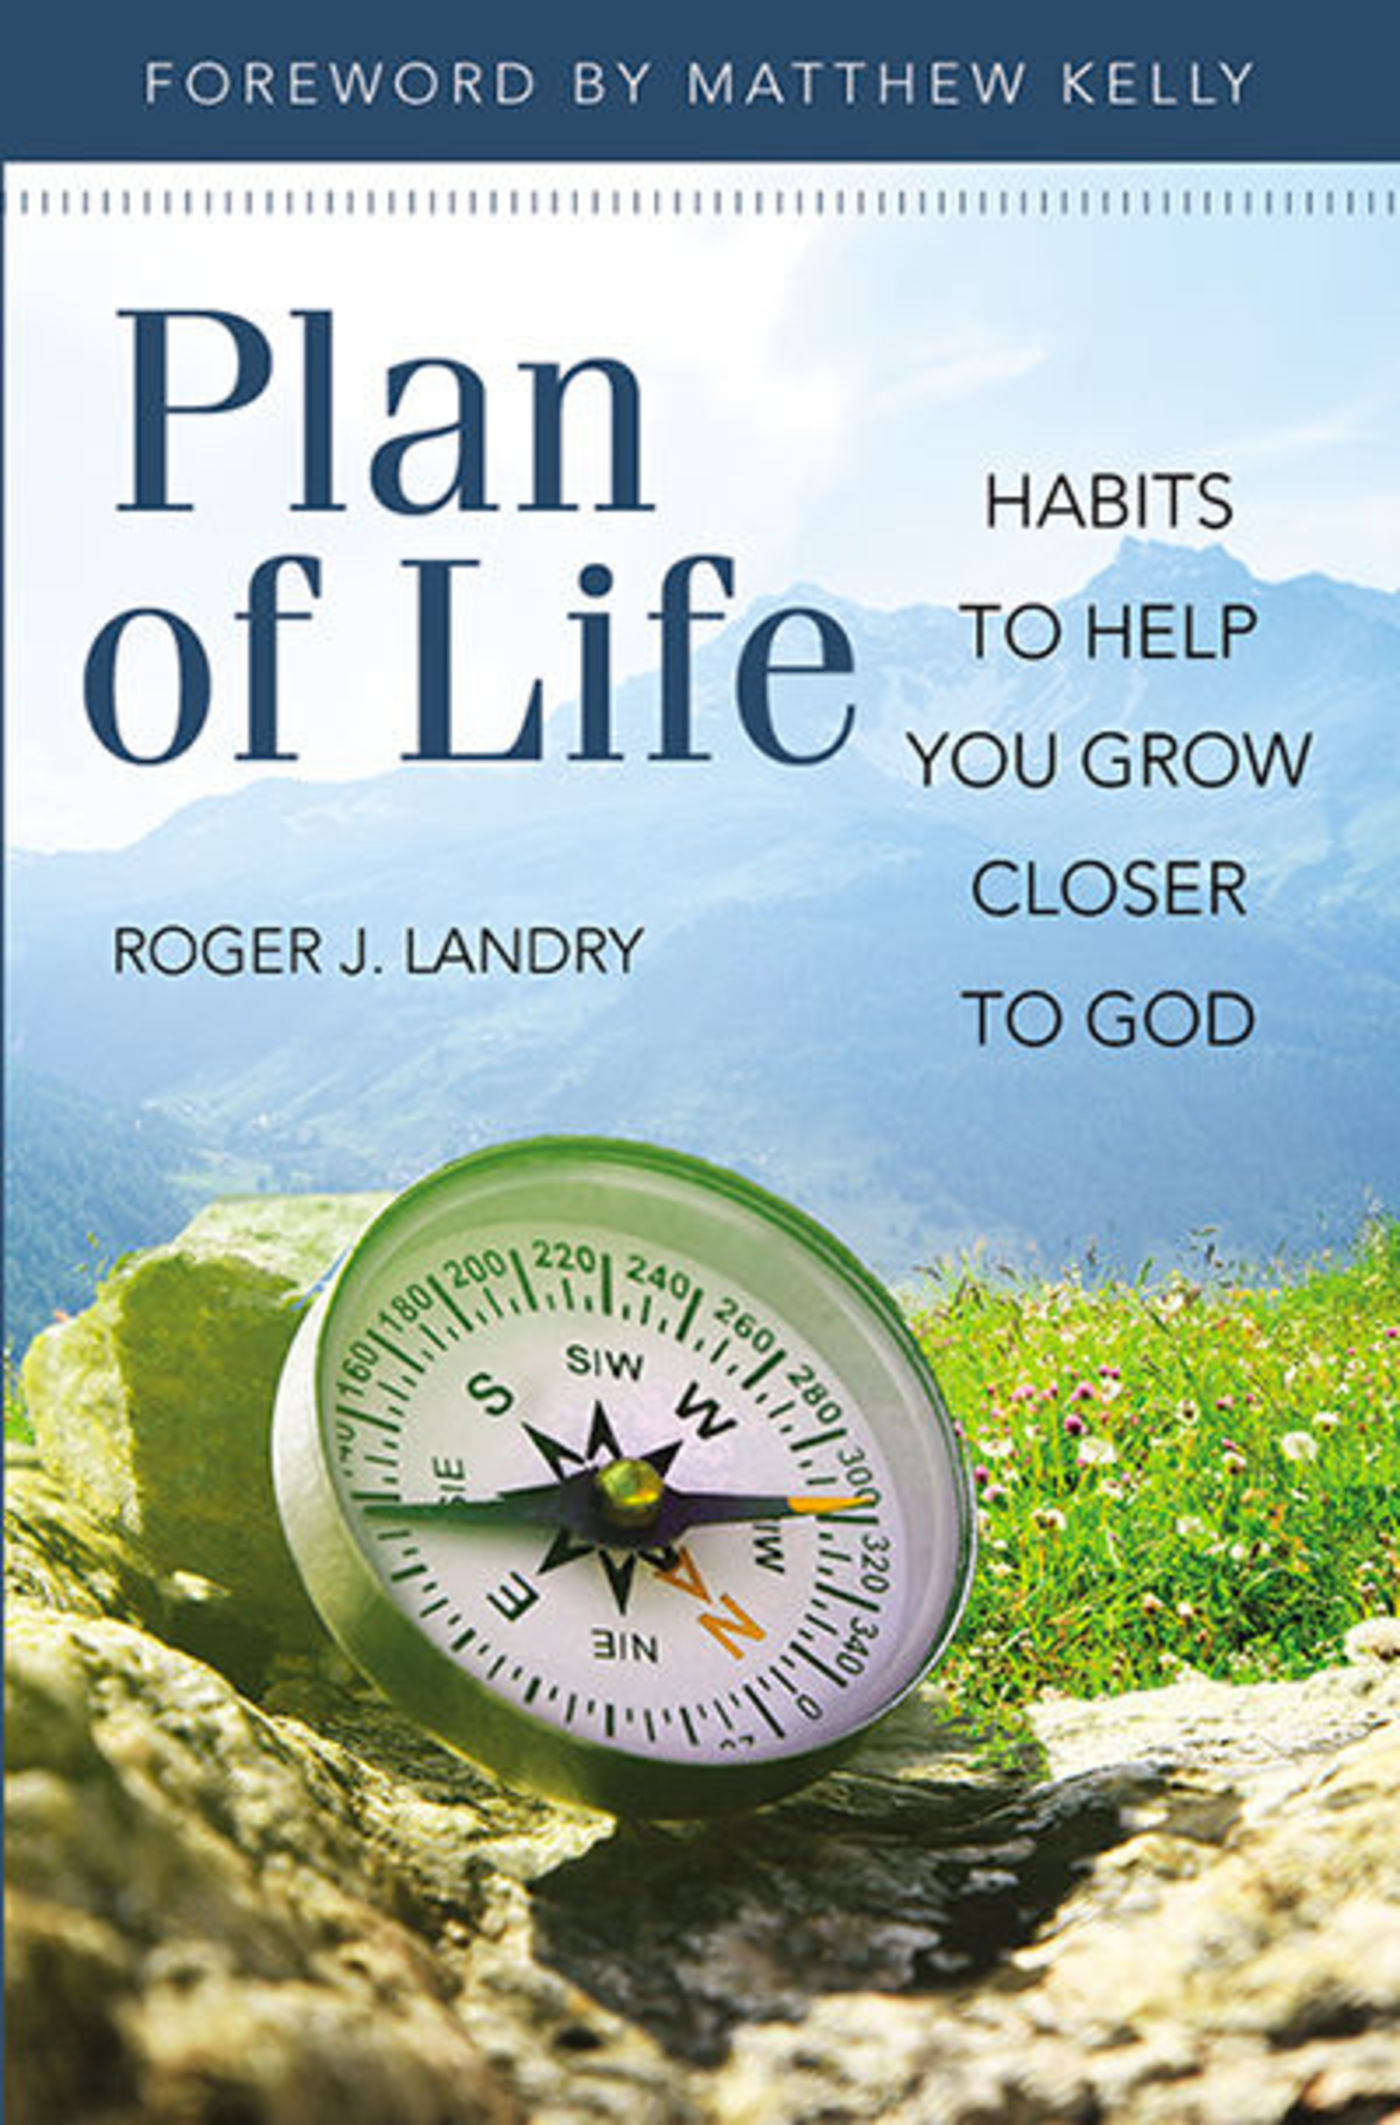 Catholic easter hymn planning guide 2013 the array reviews of plan of life habits to help you grow closer to god rh fandeluxe